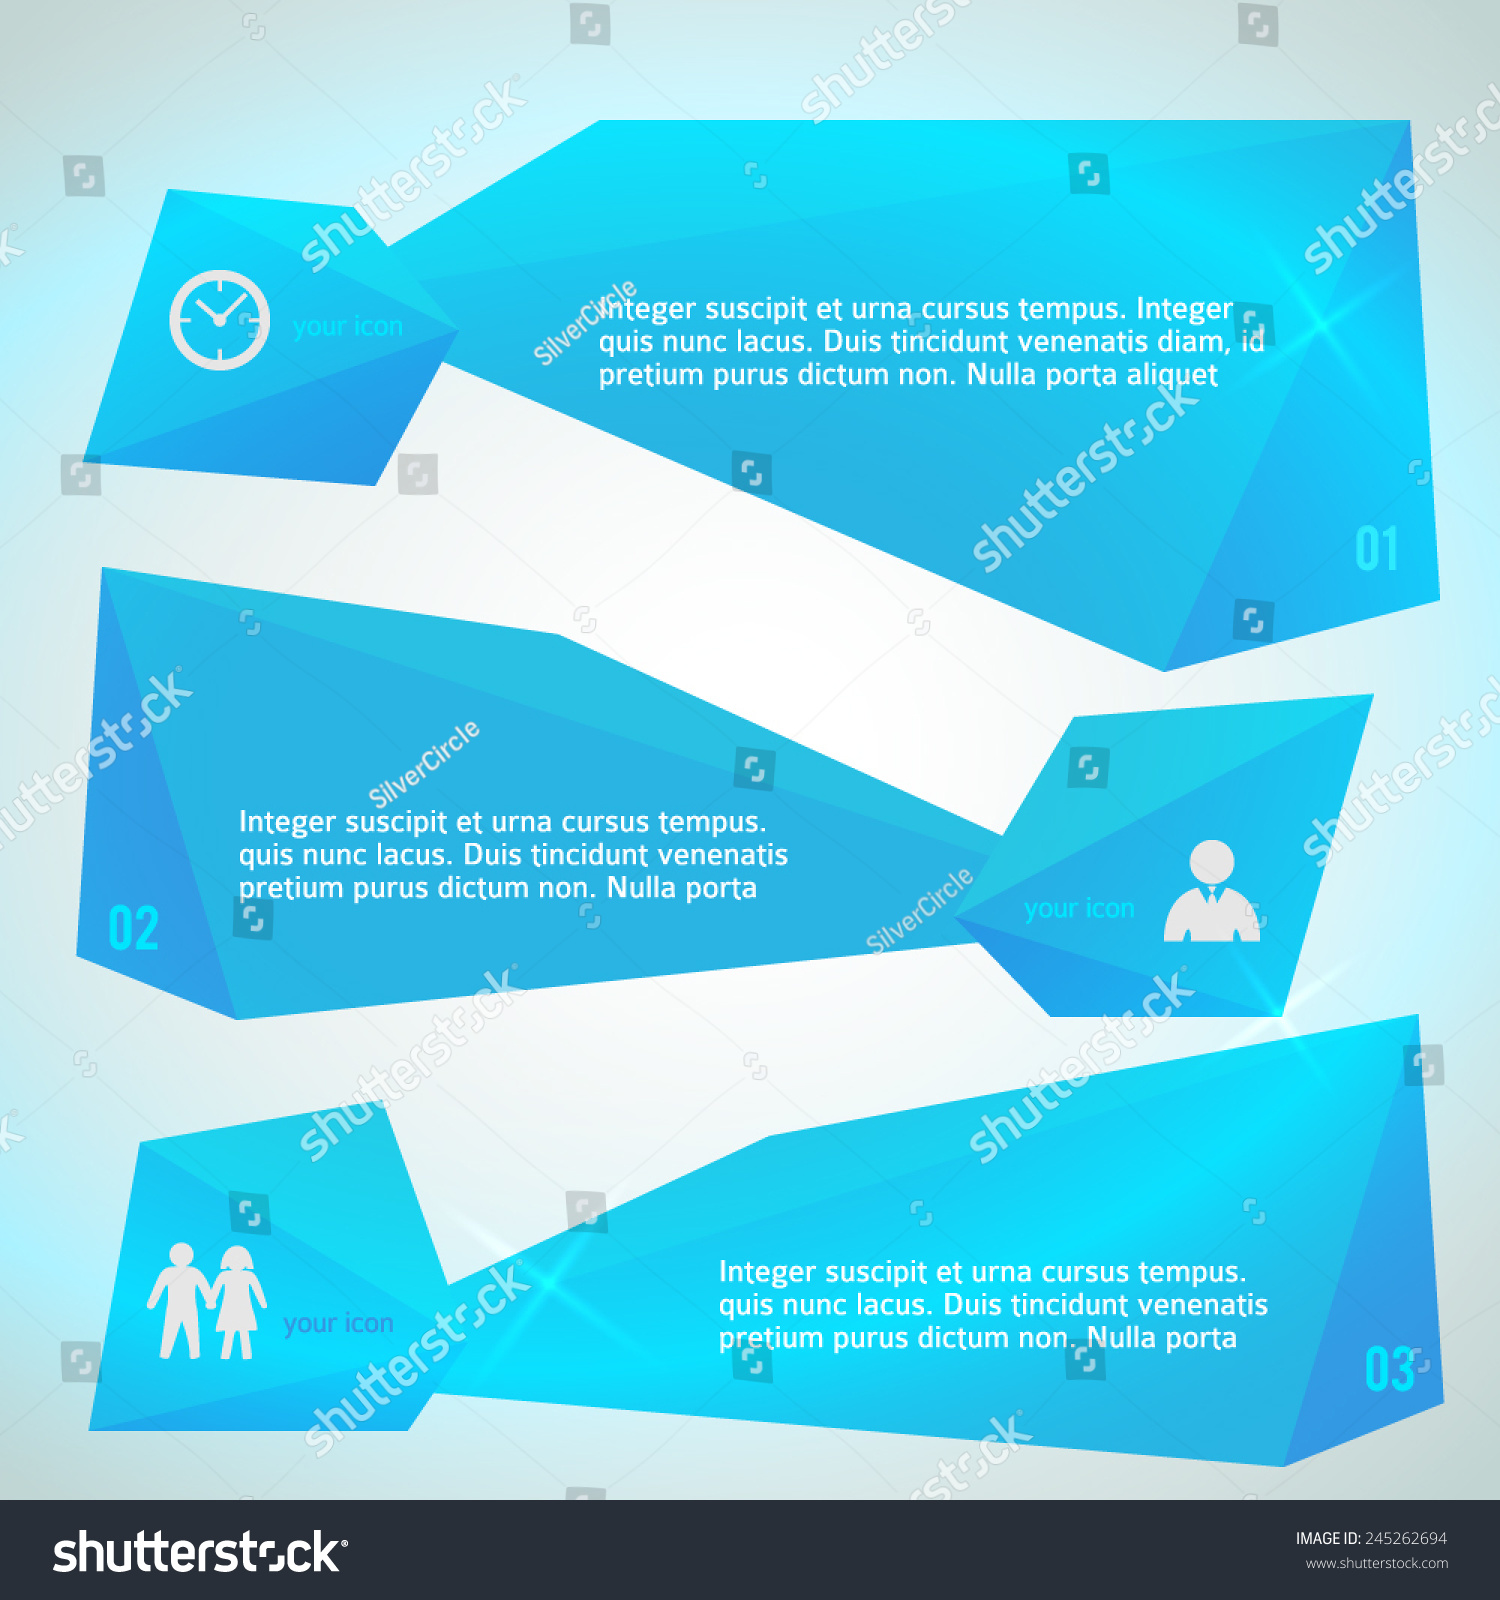 Modern Design Infographic Style Template On Stock Vector (2018 ...